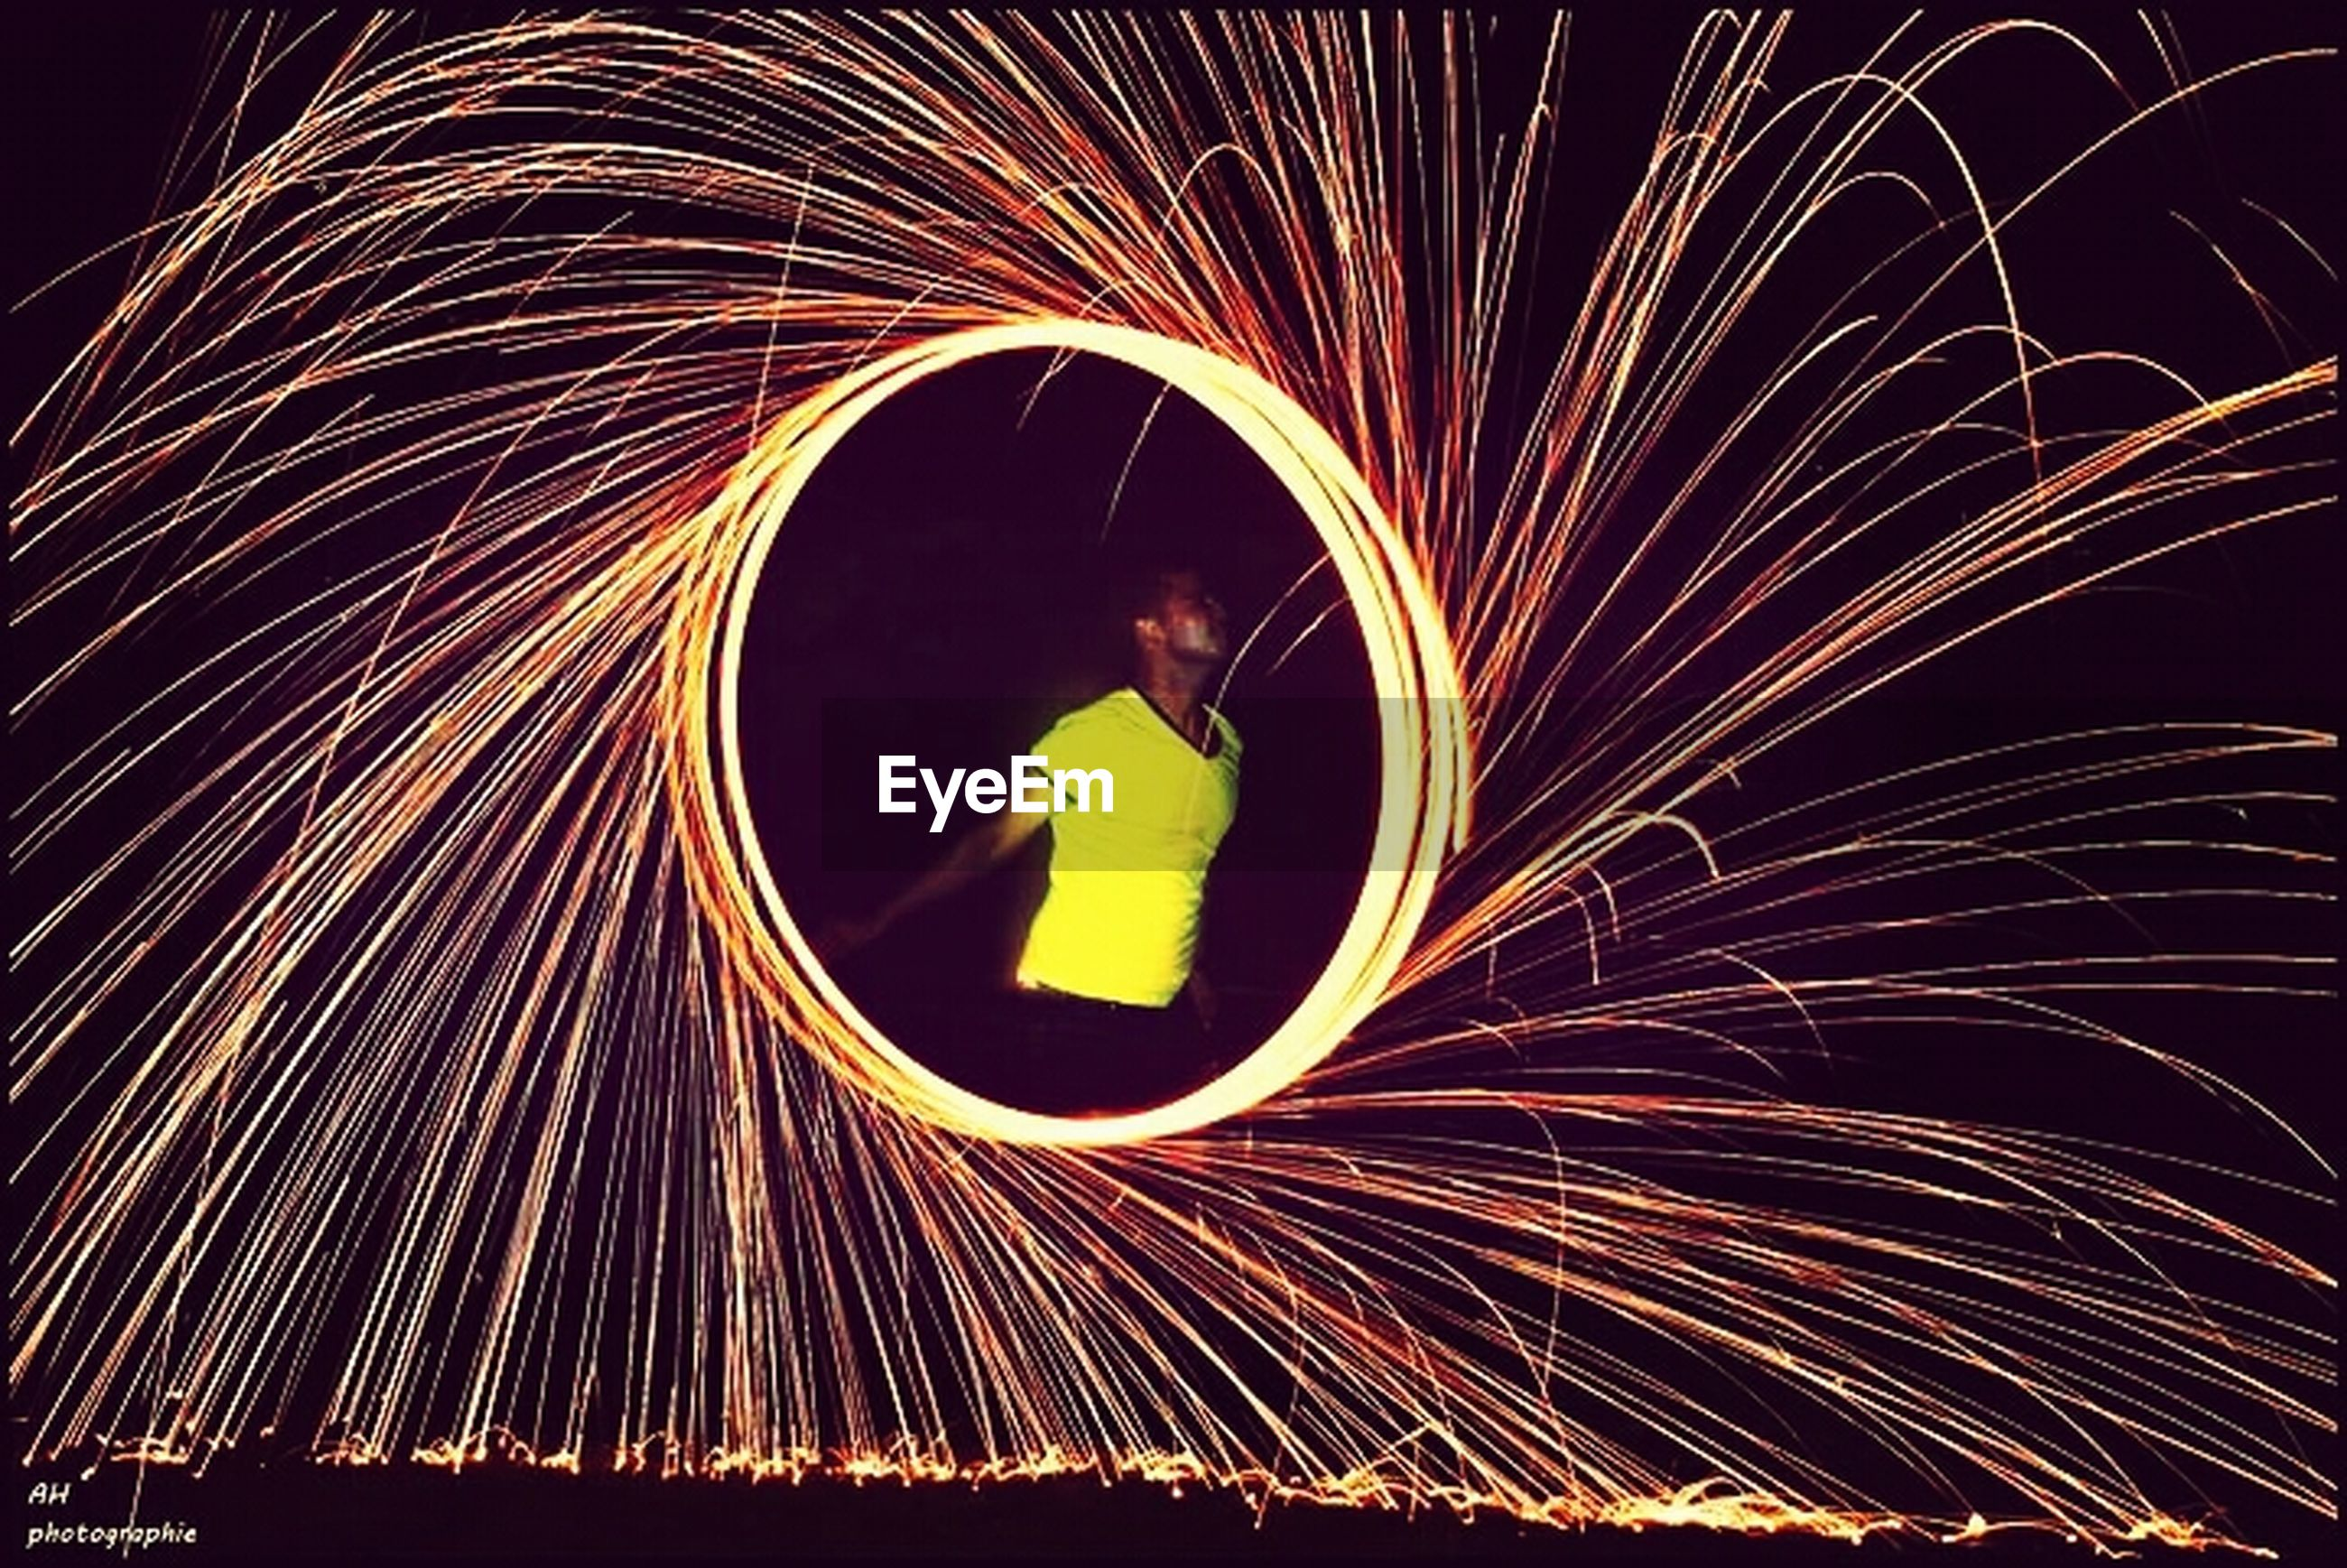 long exposure, night, illuminated, motion, blurred motion, light trail, arts culture and entertainment, circle, glowing, celebration, firework display, pattern, light painting, abstract, sparks, low angle view, multi colored, speed, exploding, spinning